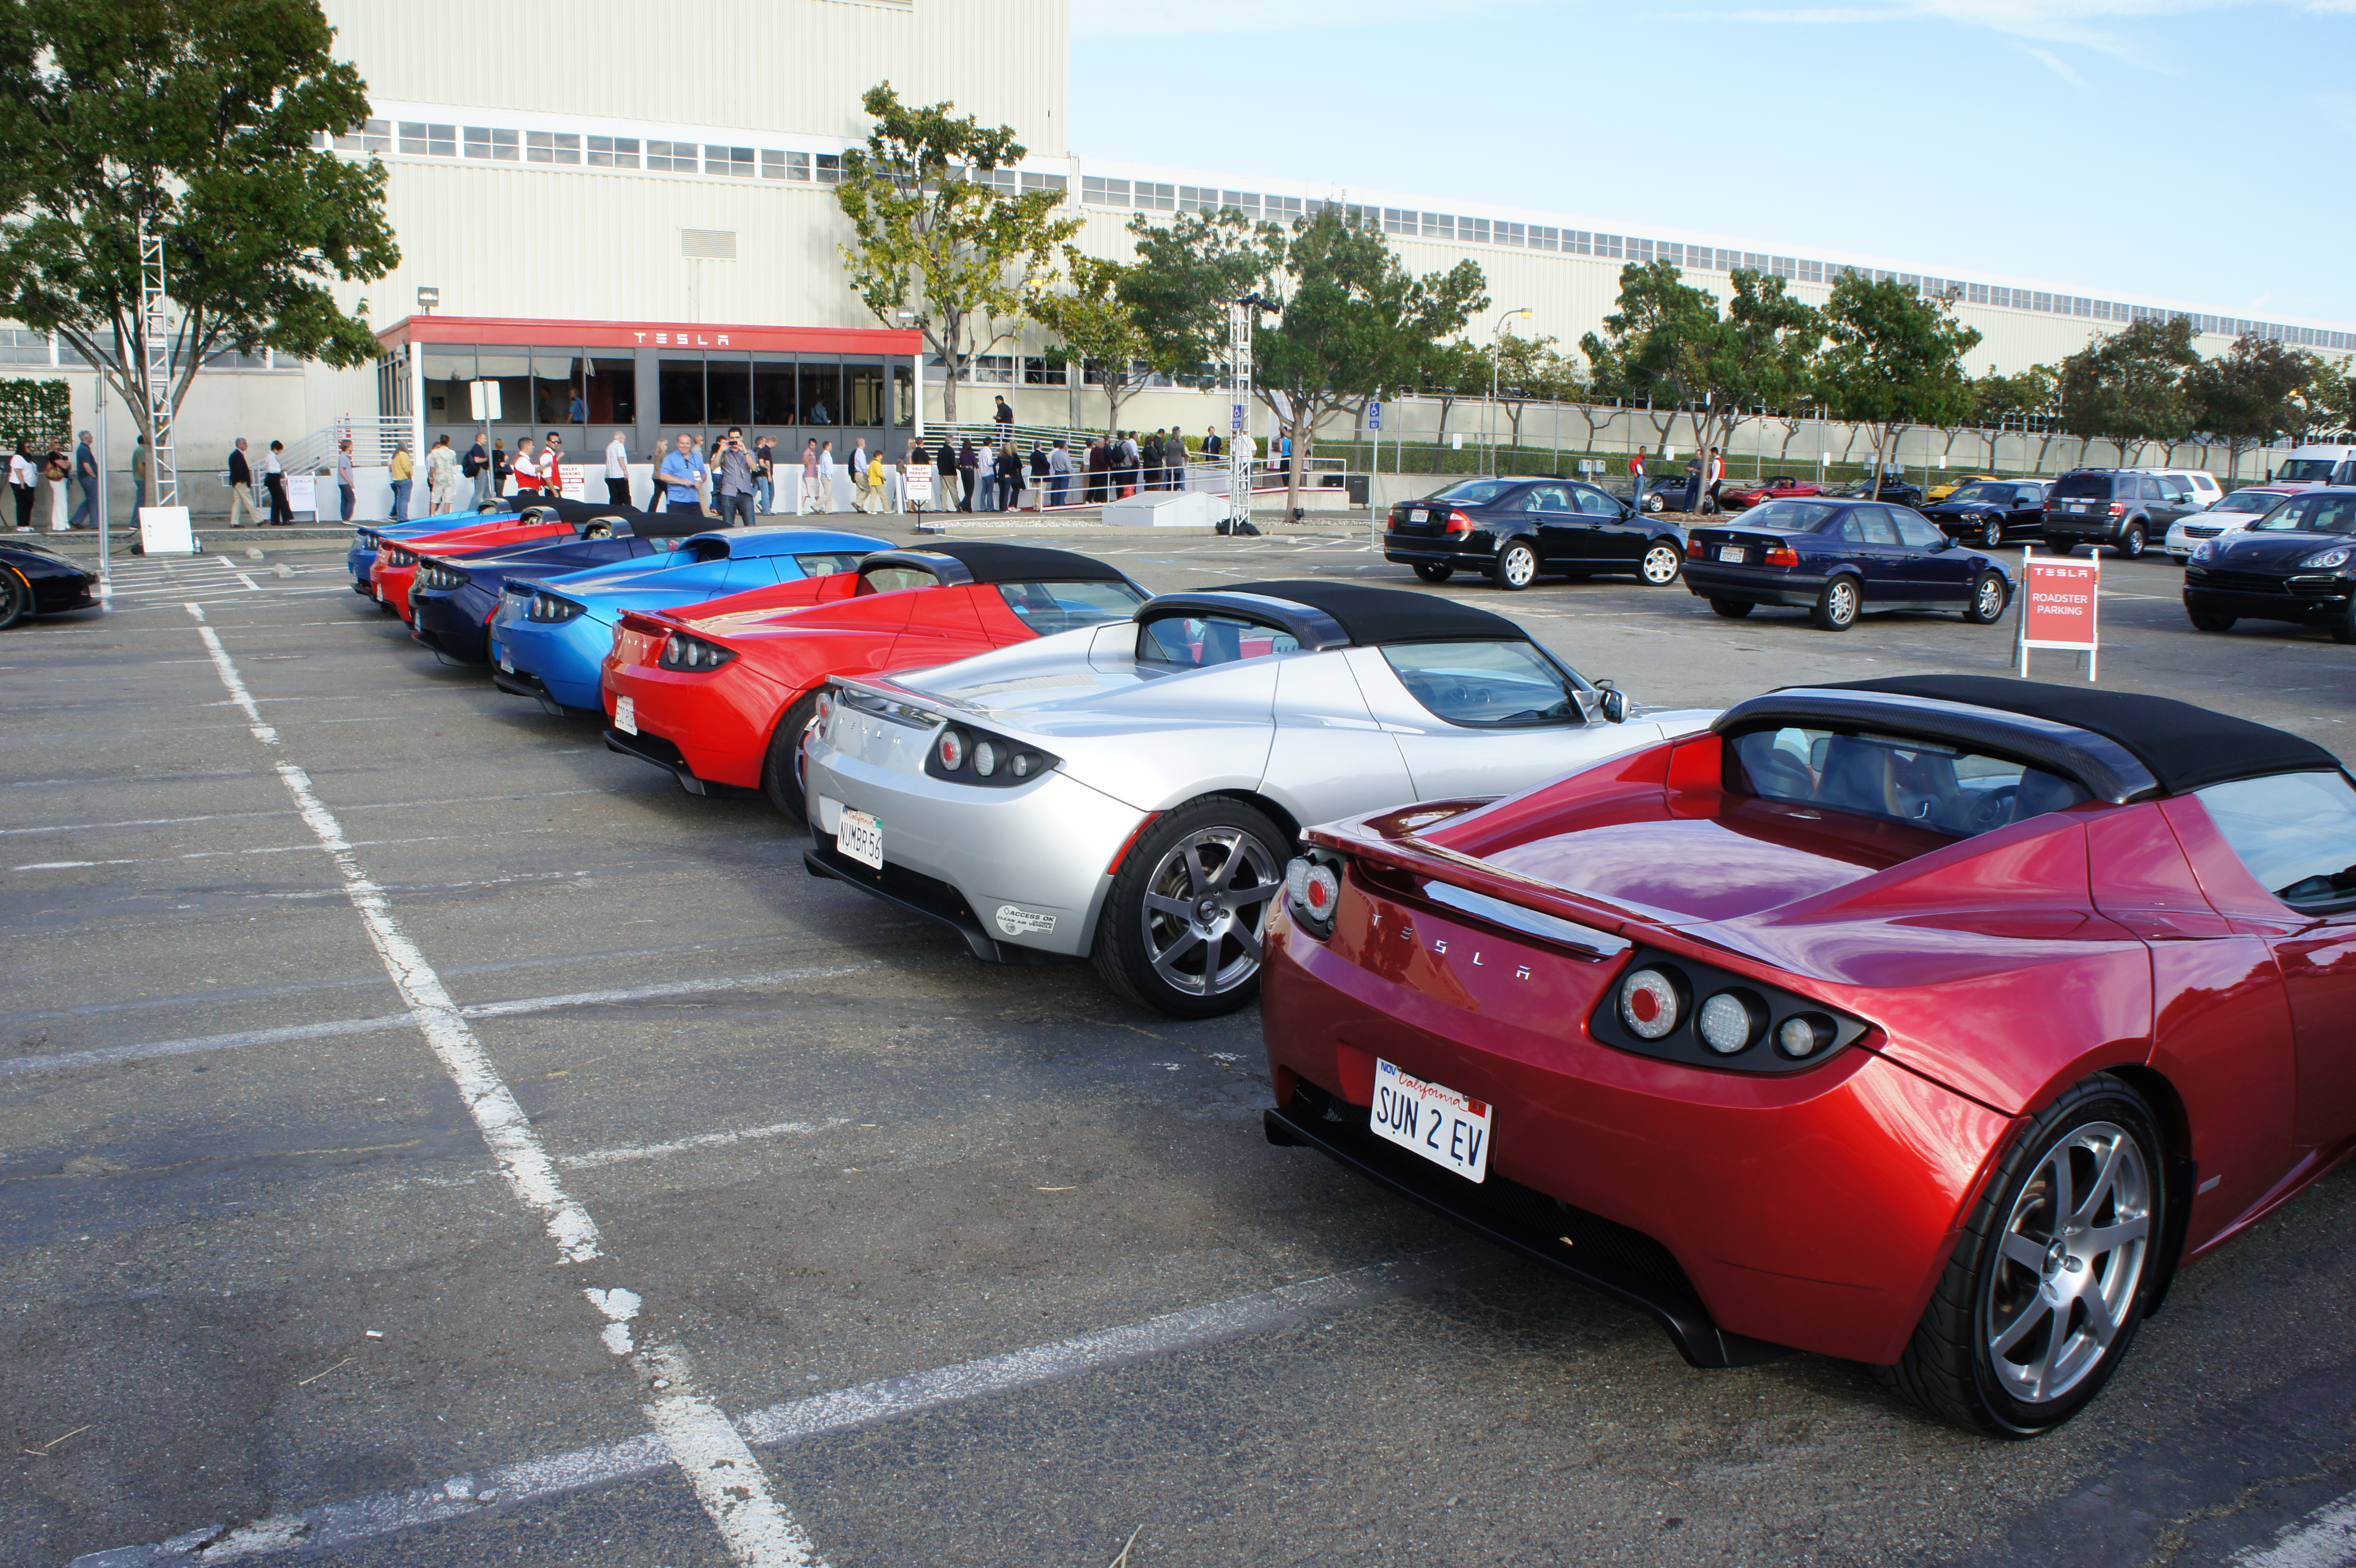 Roadsters lined up outside of the Model S Beta Customer event